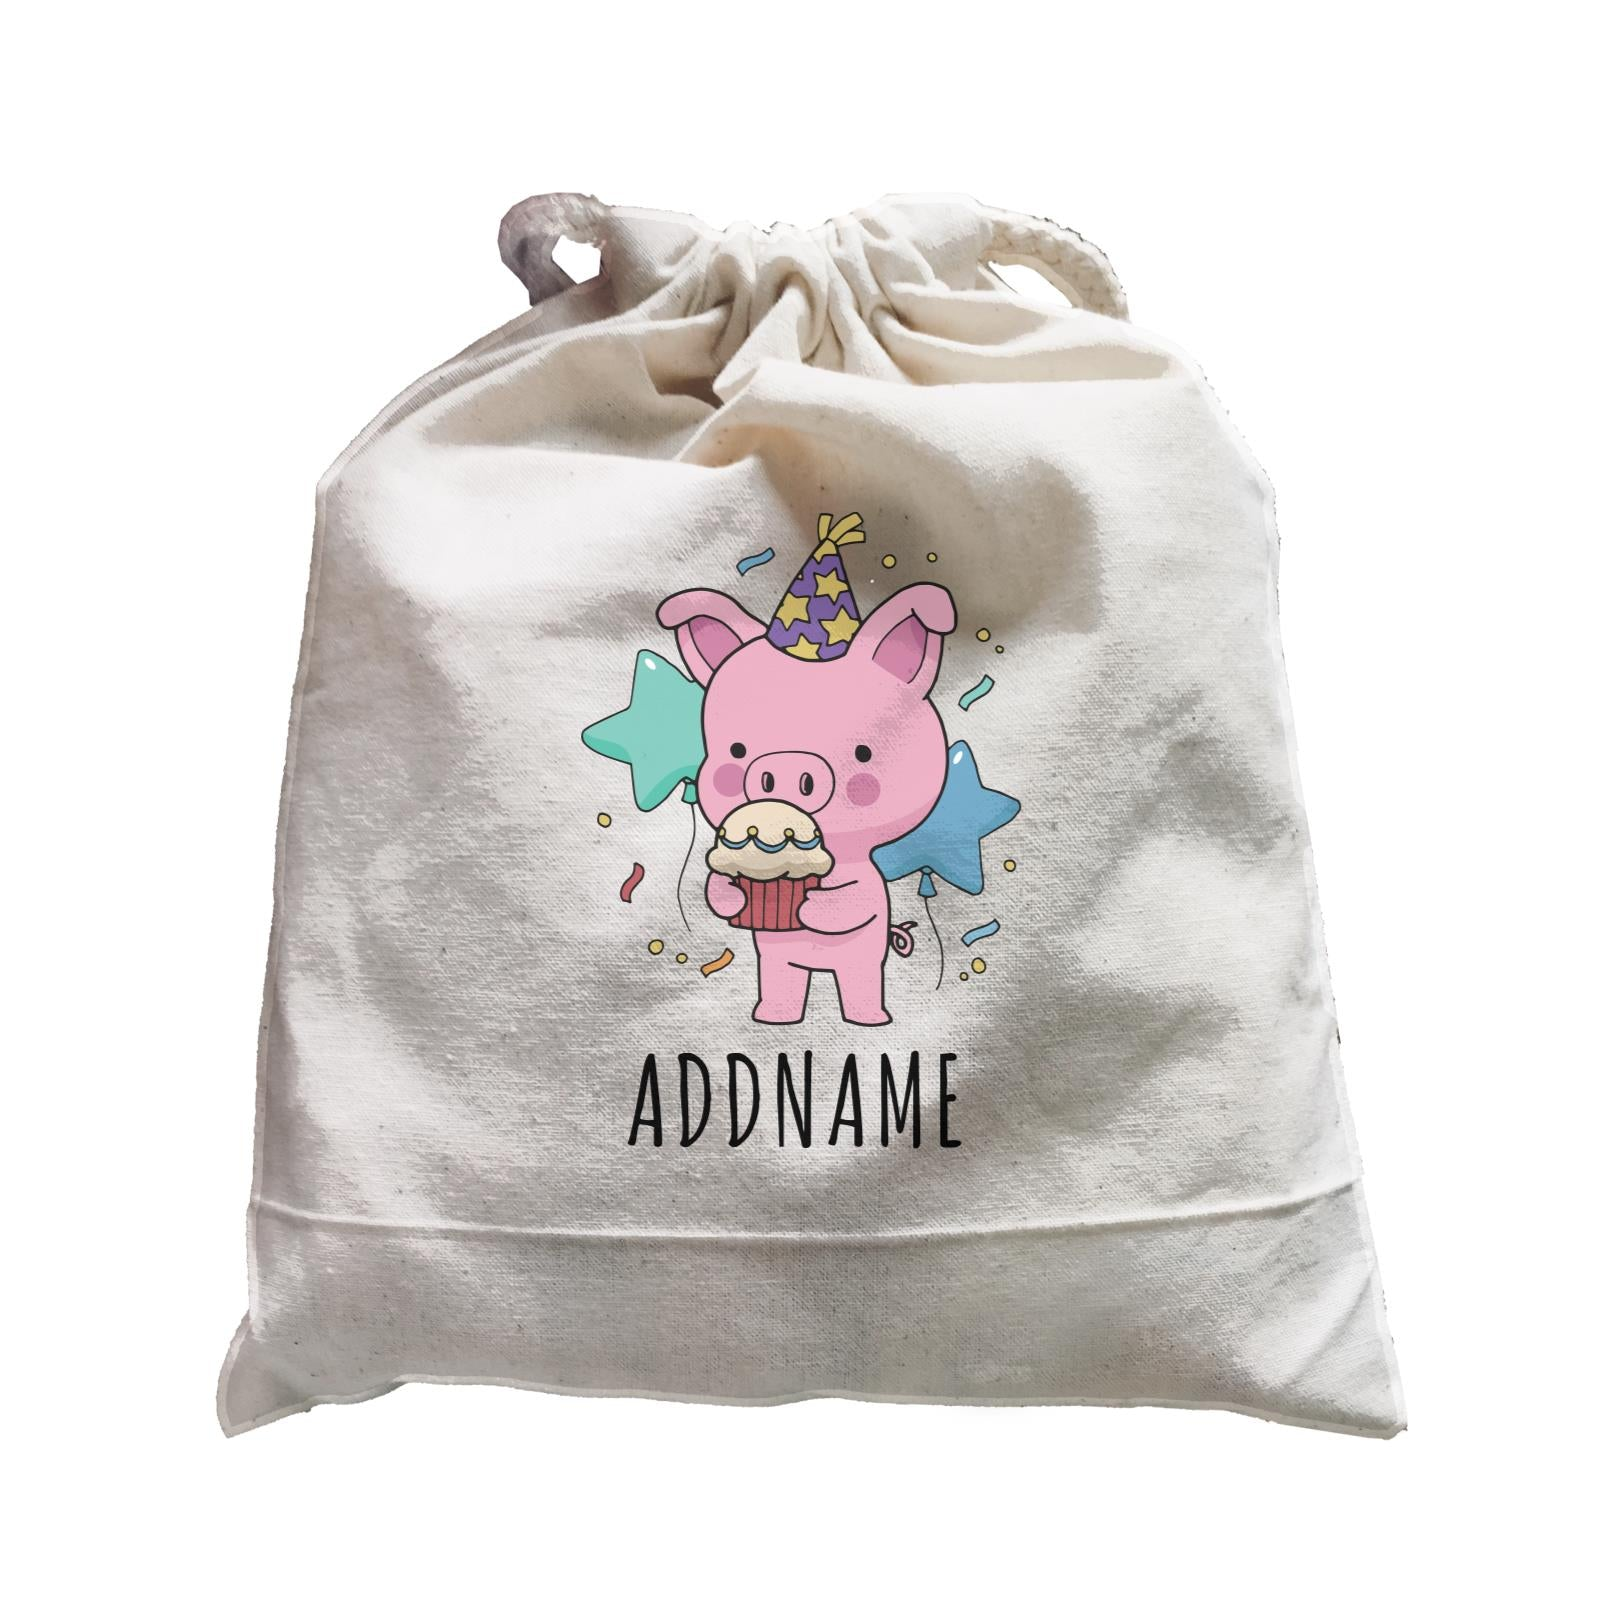 Birthday Sketch Animals Pig with Party Hat Eating Cupcake Addname Satchel